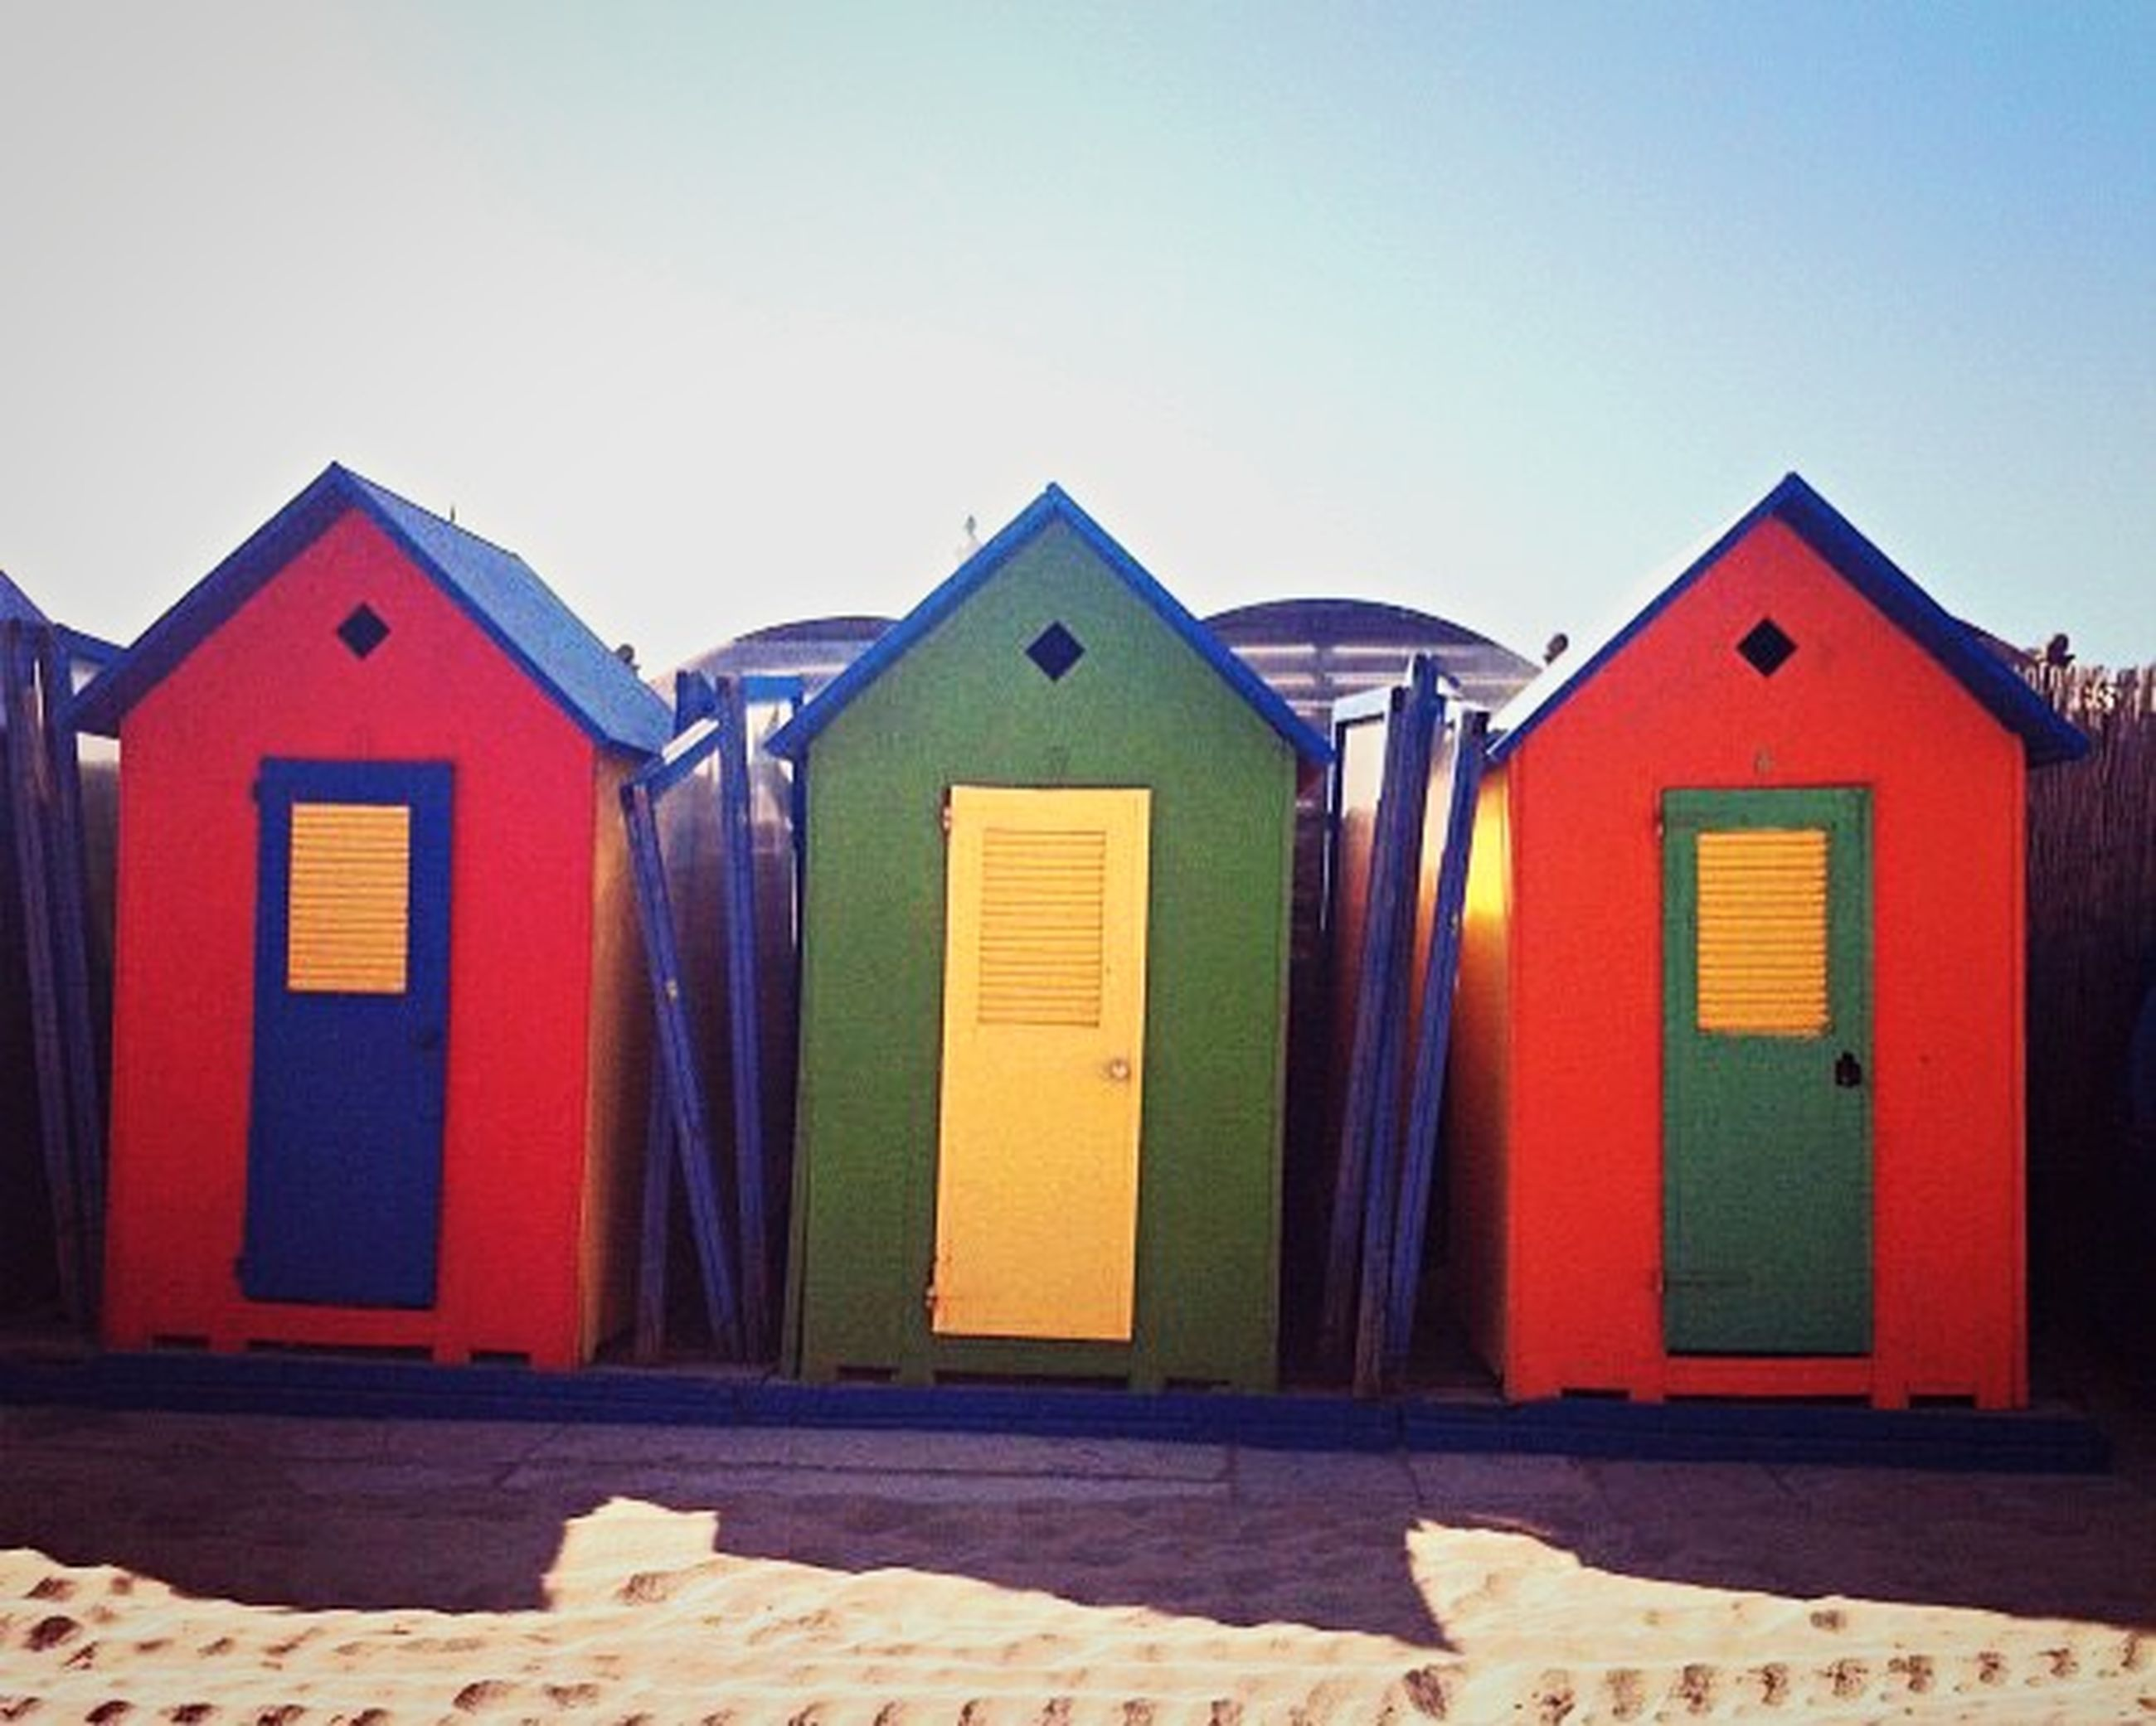 building exterior, architecture, built structure, clear sky, copy space, house, multi colored, side by side, in a row, window, residential structure, blue, beach hut, residential building, red, no people, day, closed, outdoors, colorful